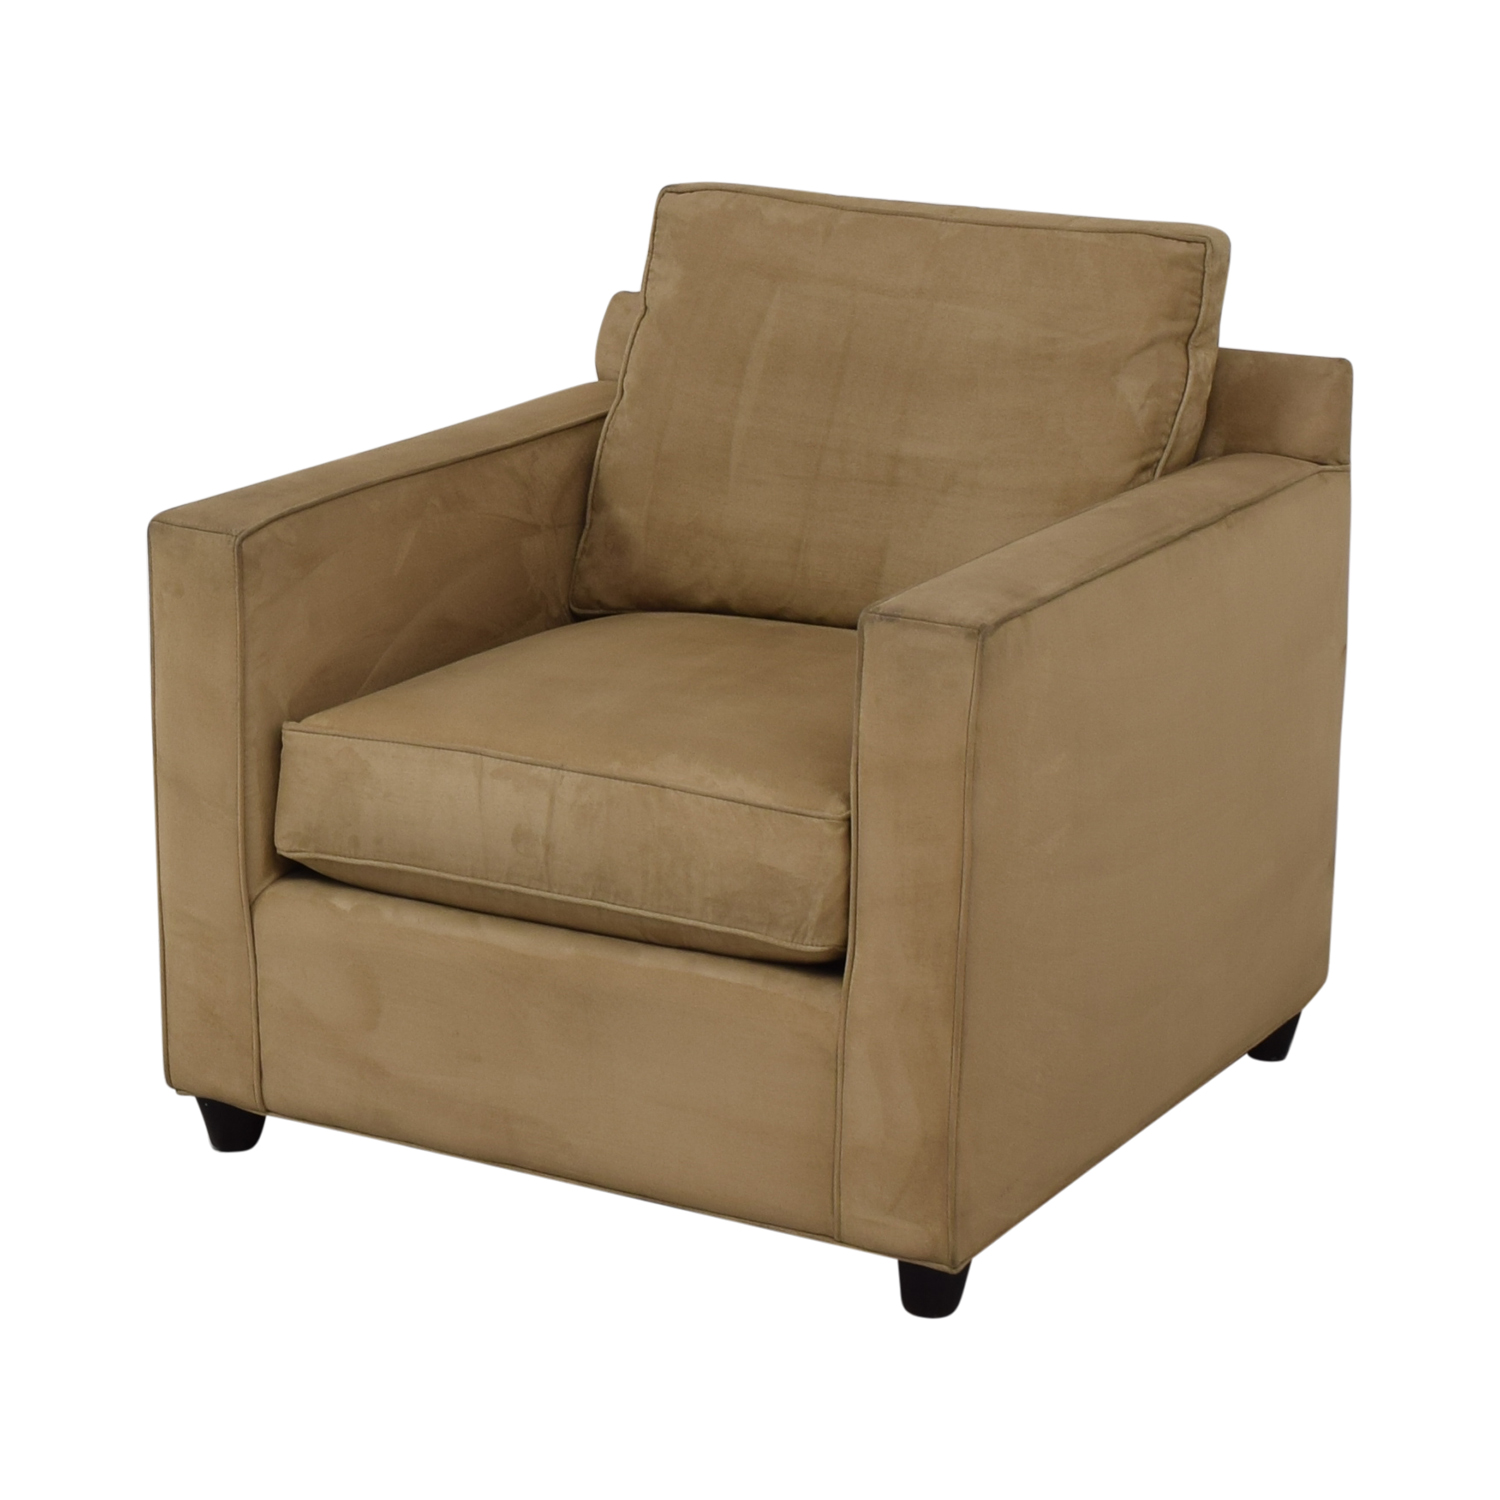 Crate & Barrel Crate & Barrel Accent Chair discount